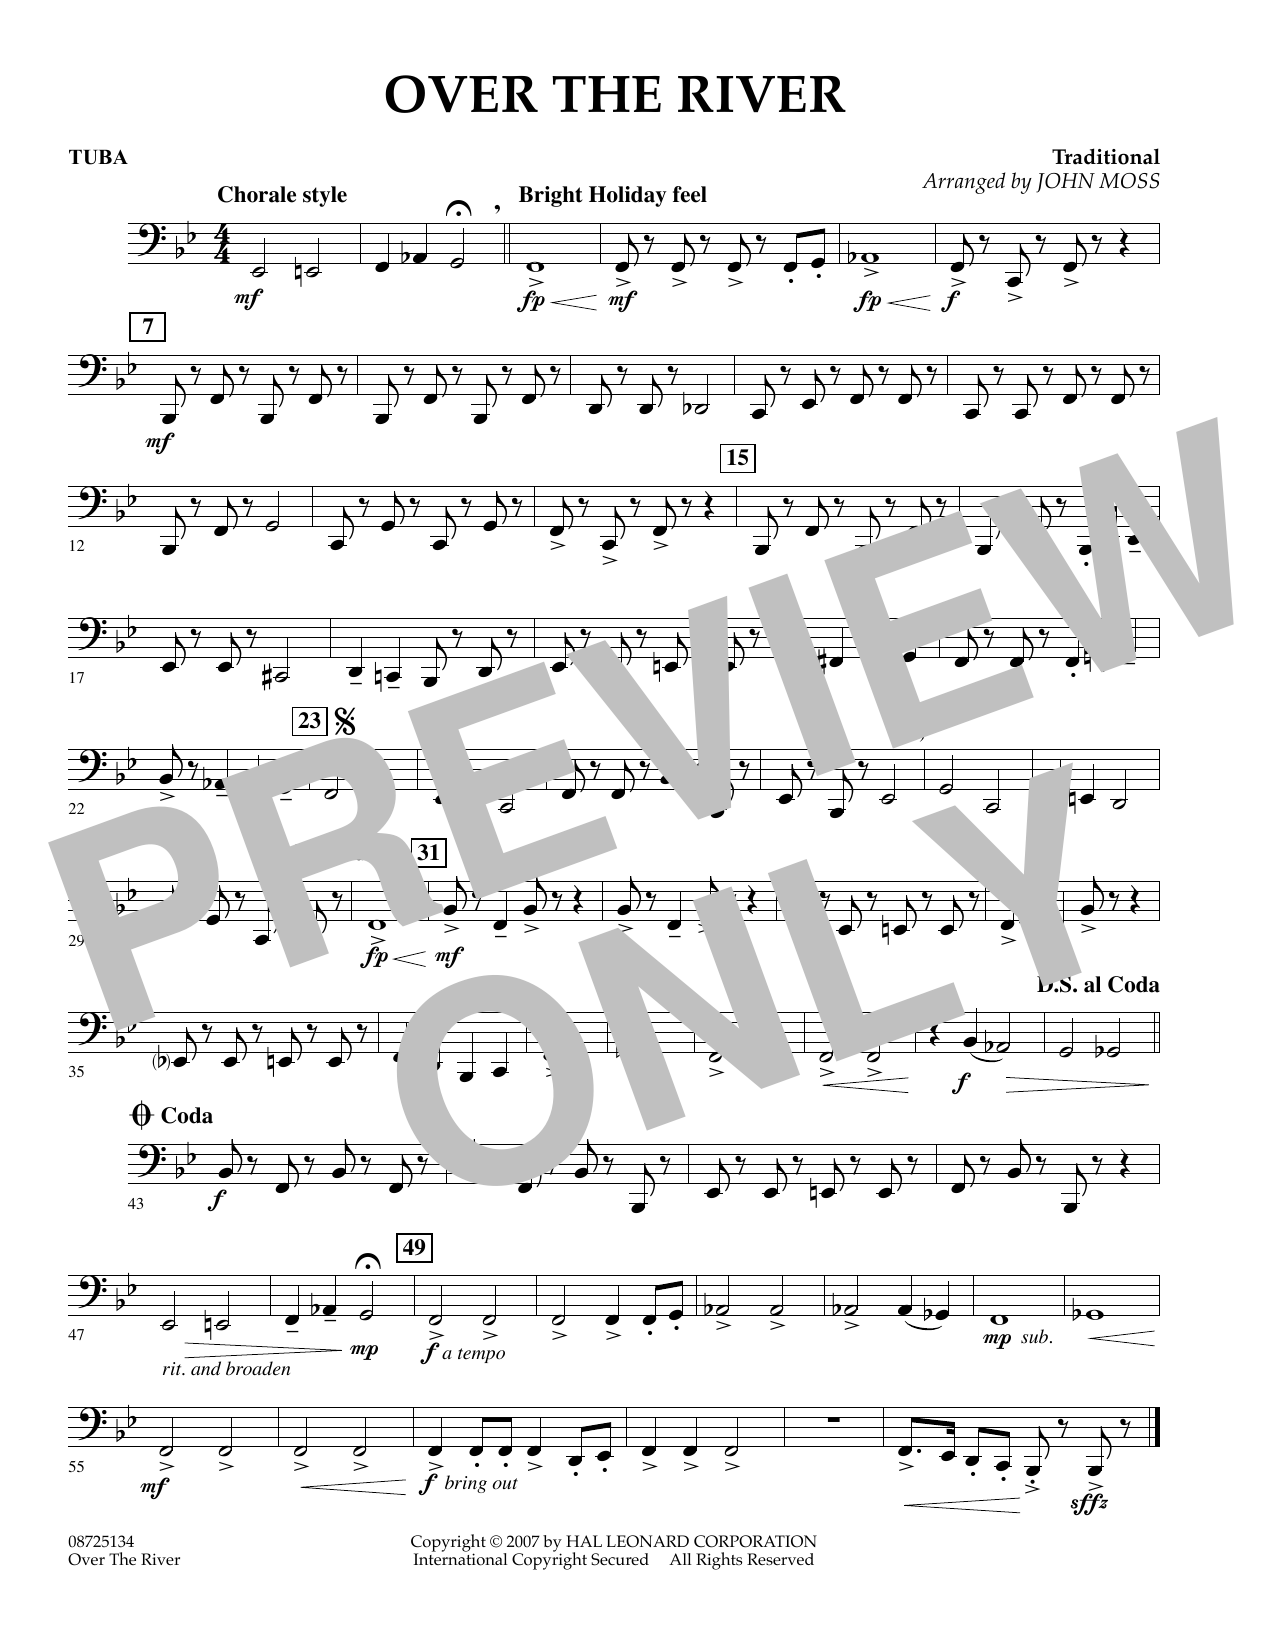 John Moss Over the River - Tuba sheet music preview music notes and score for Concert Band including 1 page(s)